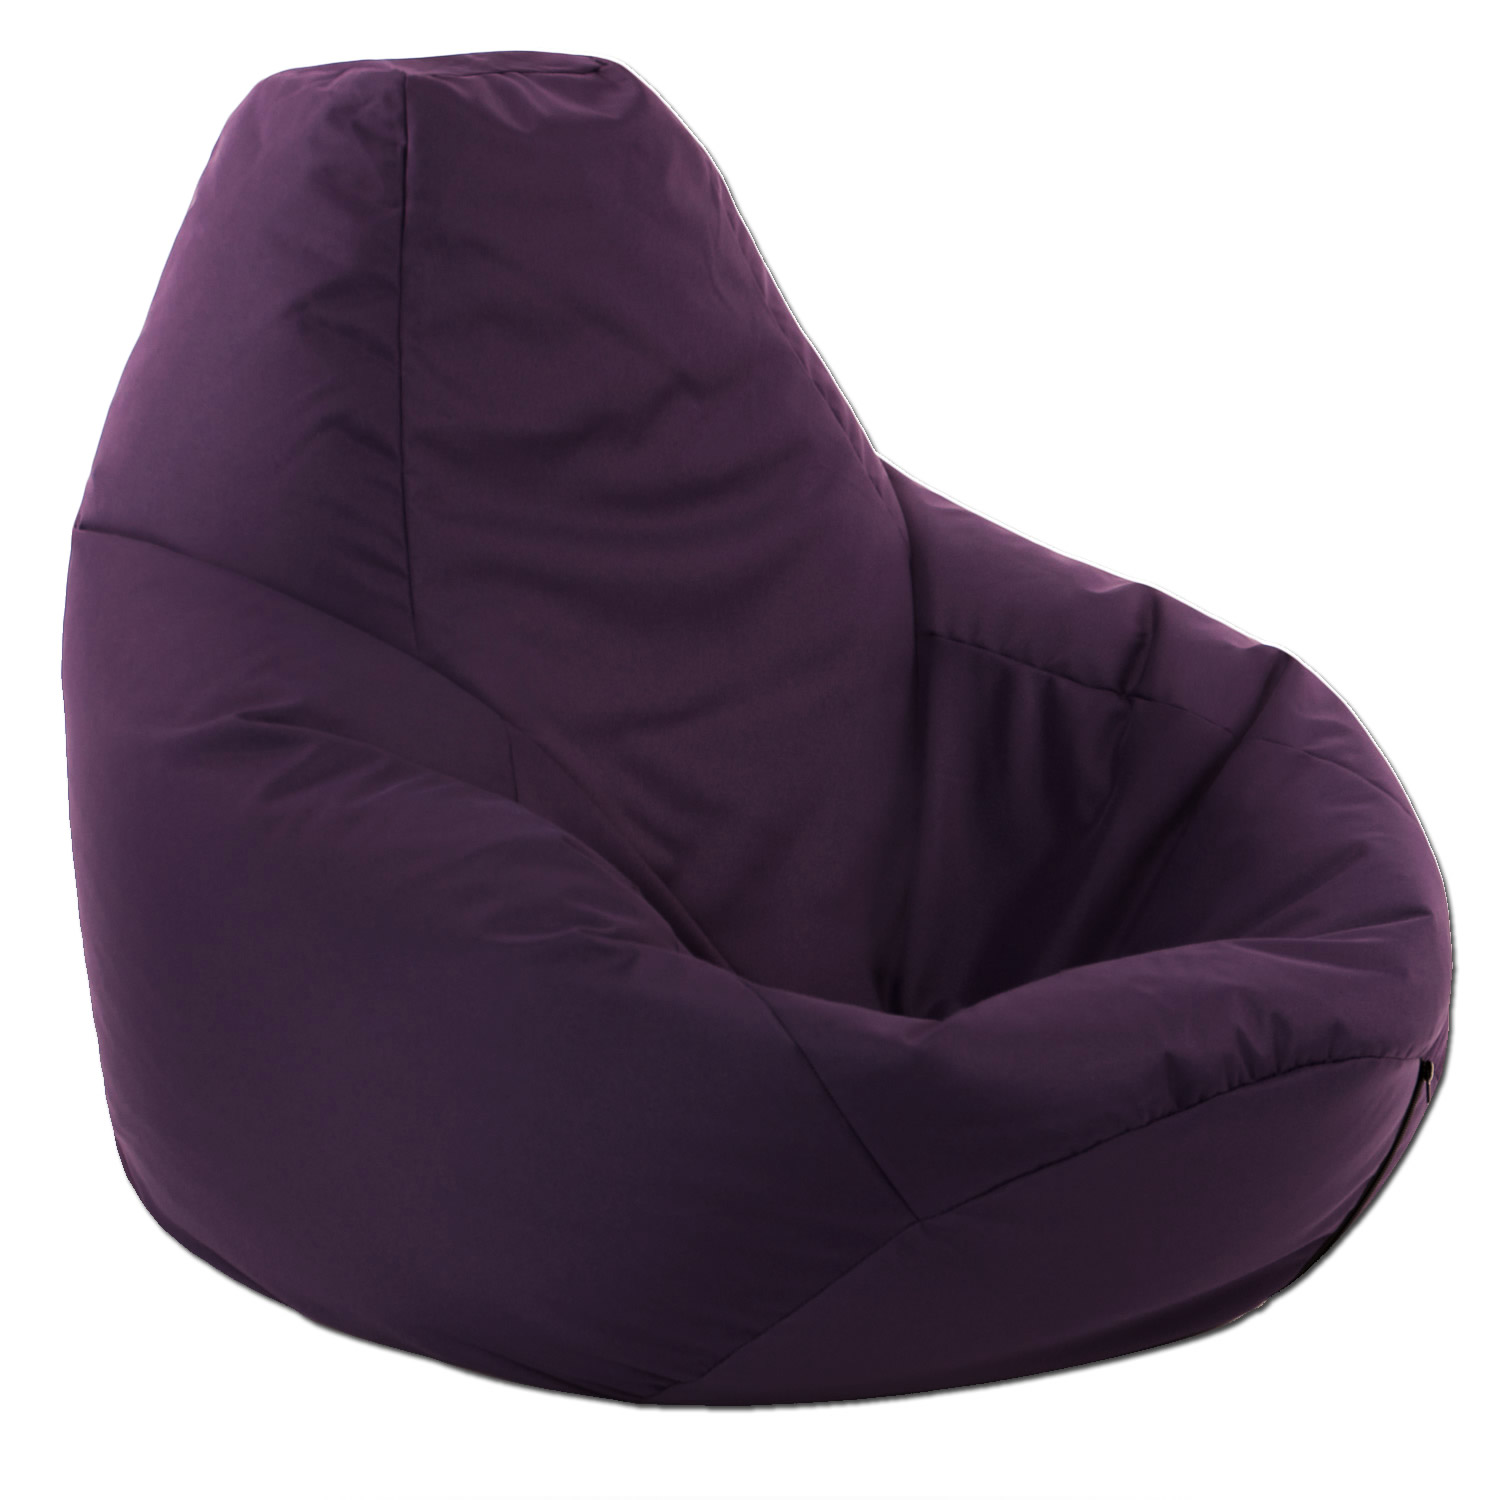 Beanbag for indoors or Outdoors